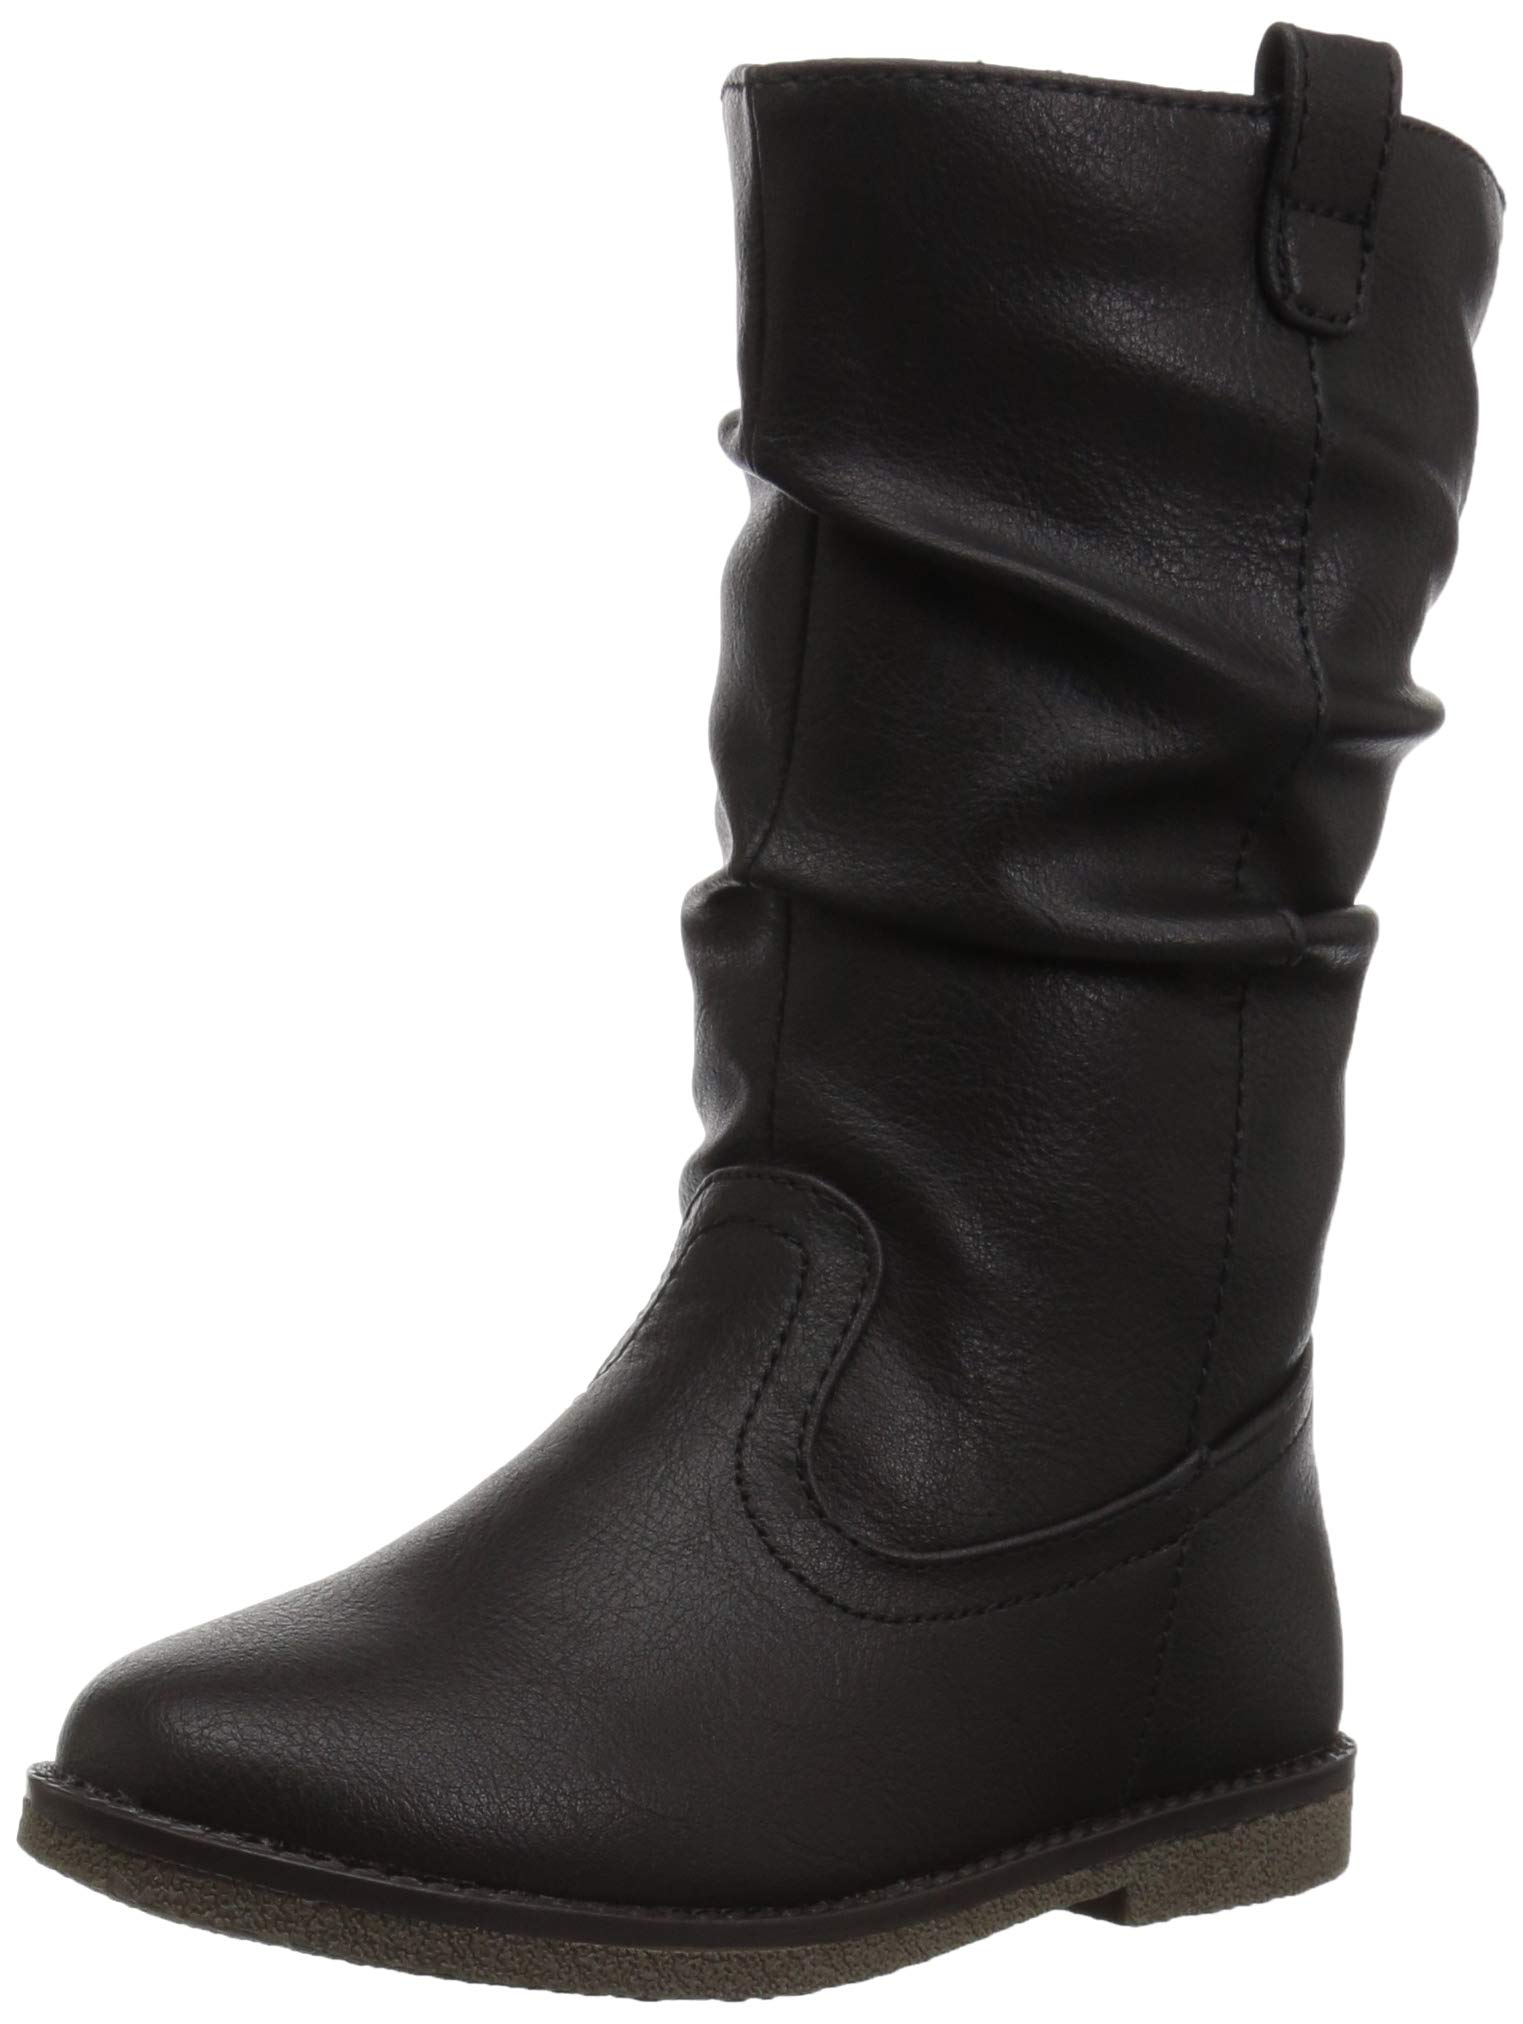 The Children's Place Girls' Tall Fashion Boot, Black, TDDLR 10 Child US Toddler